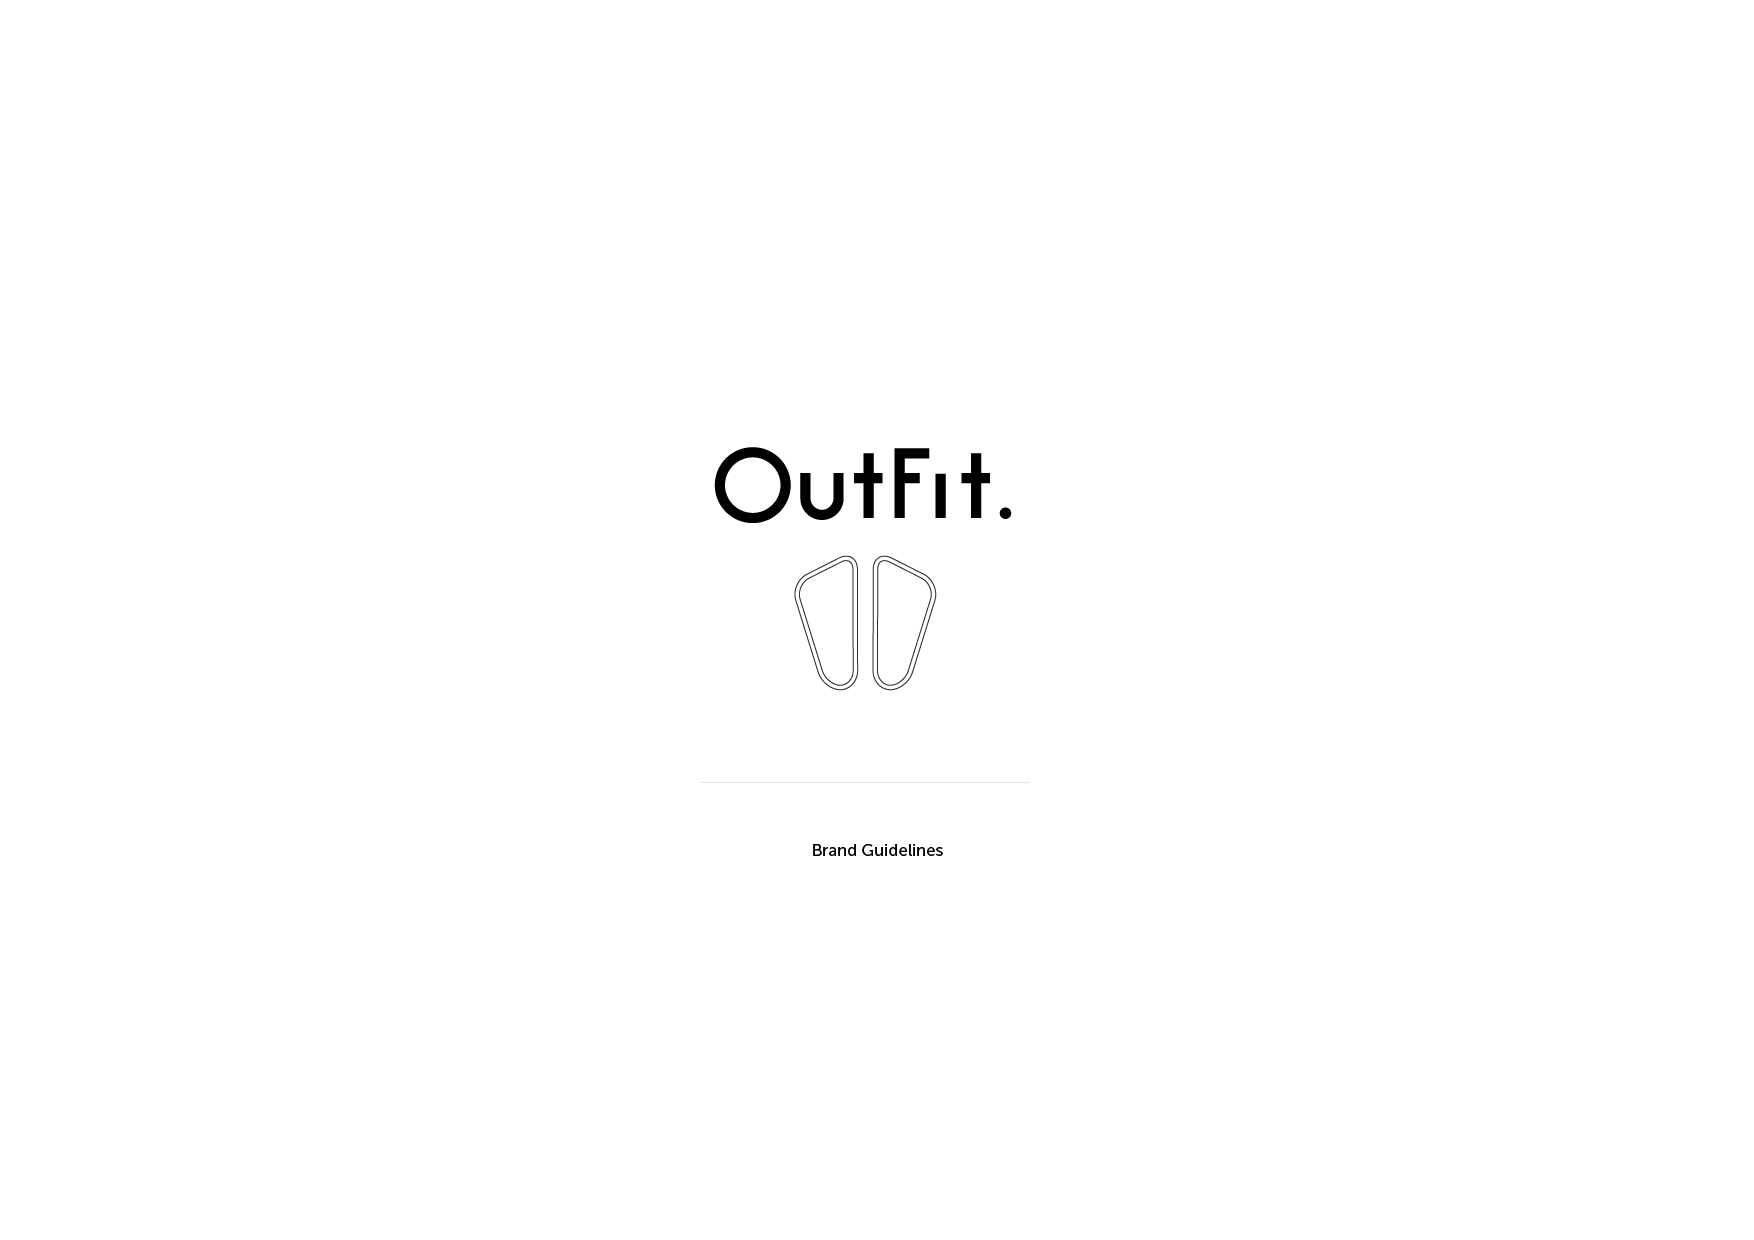 OutFit Brand Guidelines-04.png